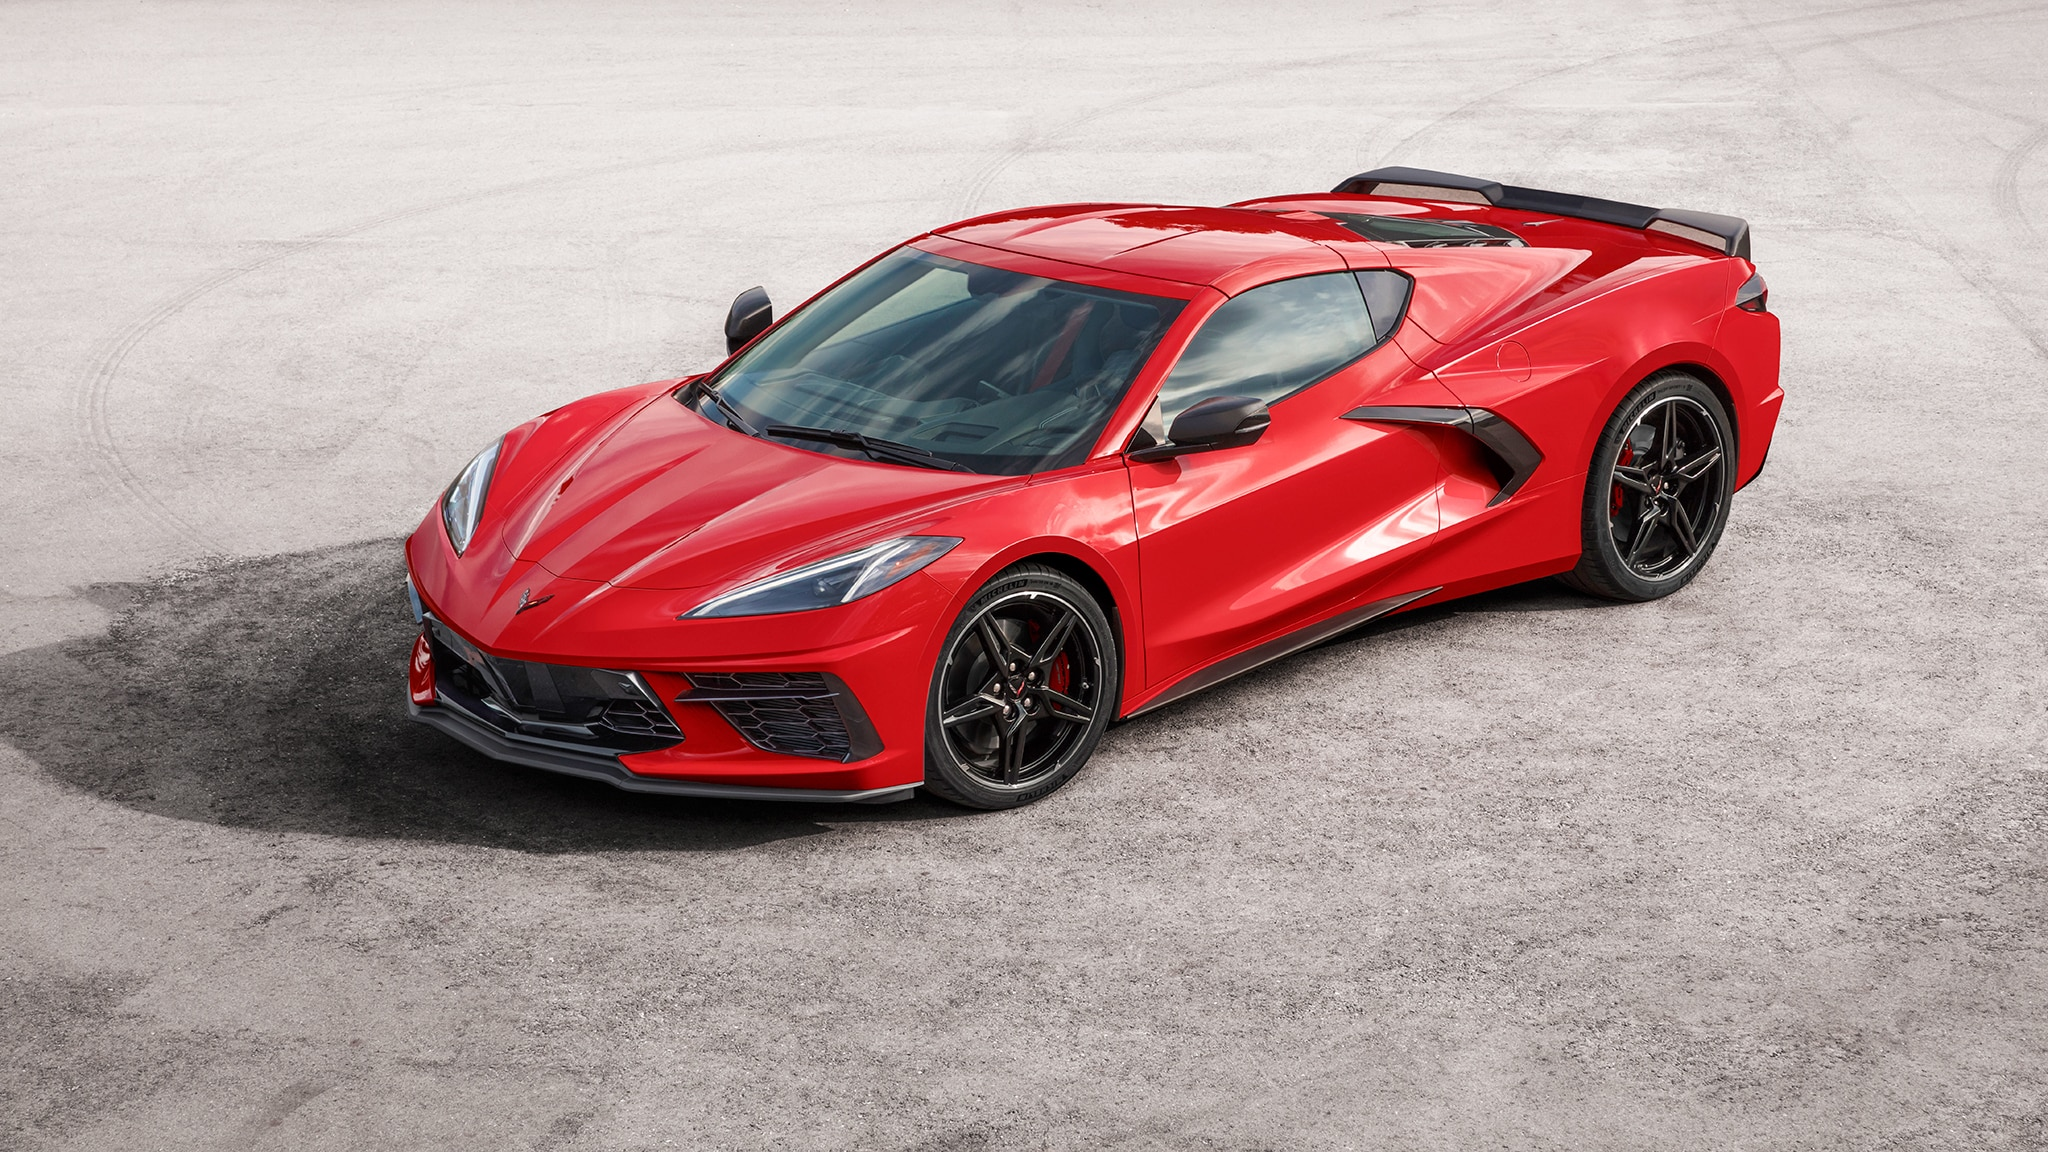 2020 Chevrolet Corvette C8 The 5 Best And 5 Worst Things